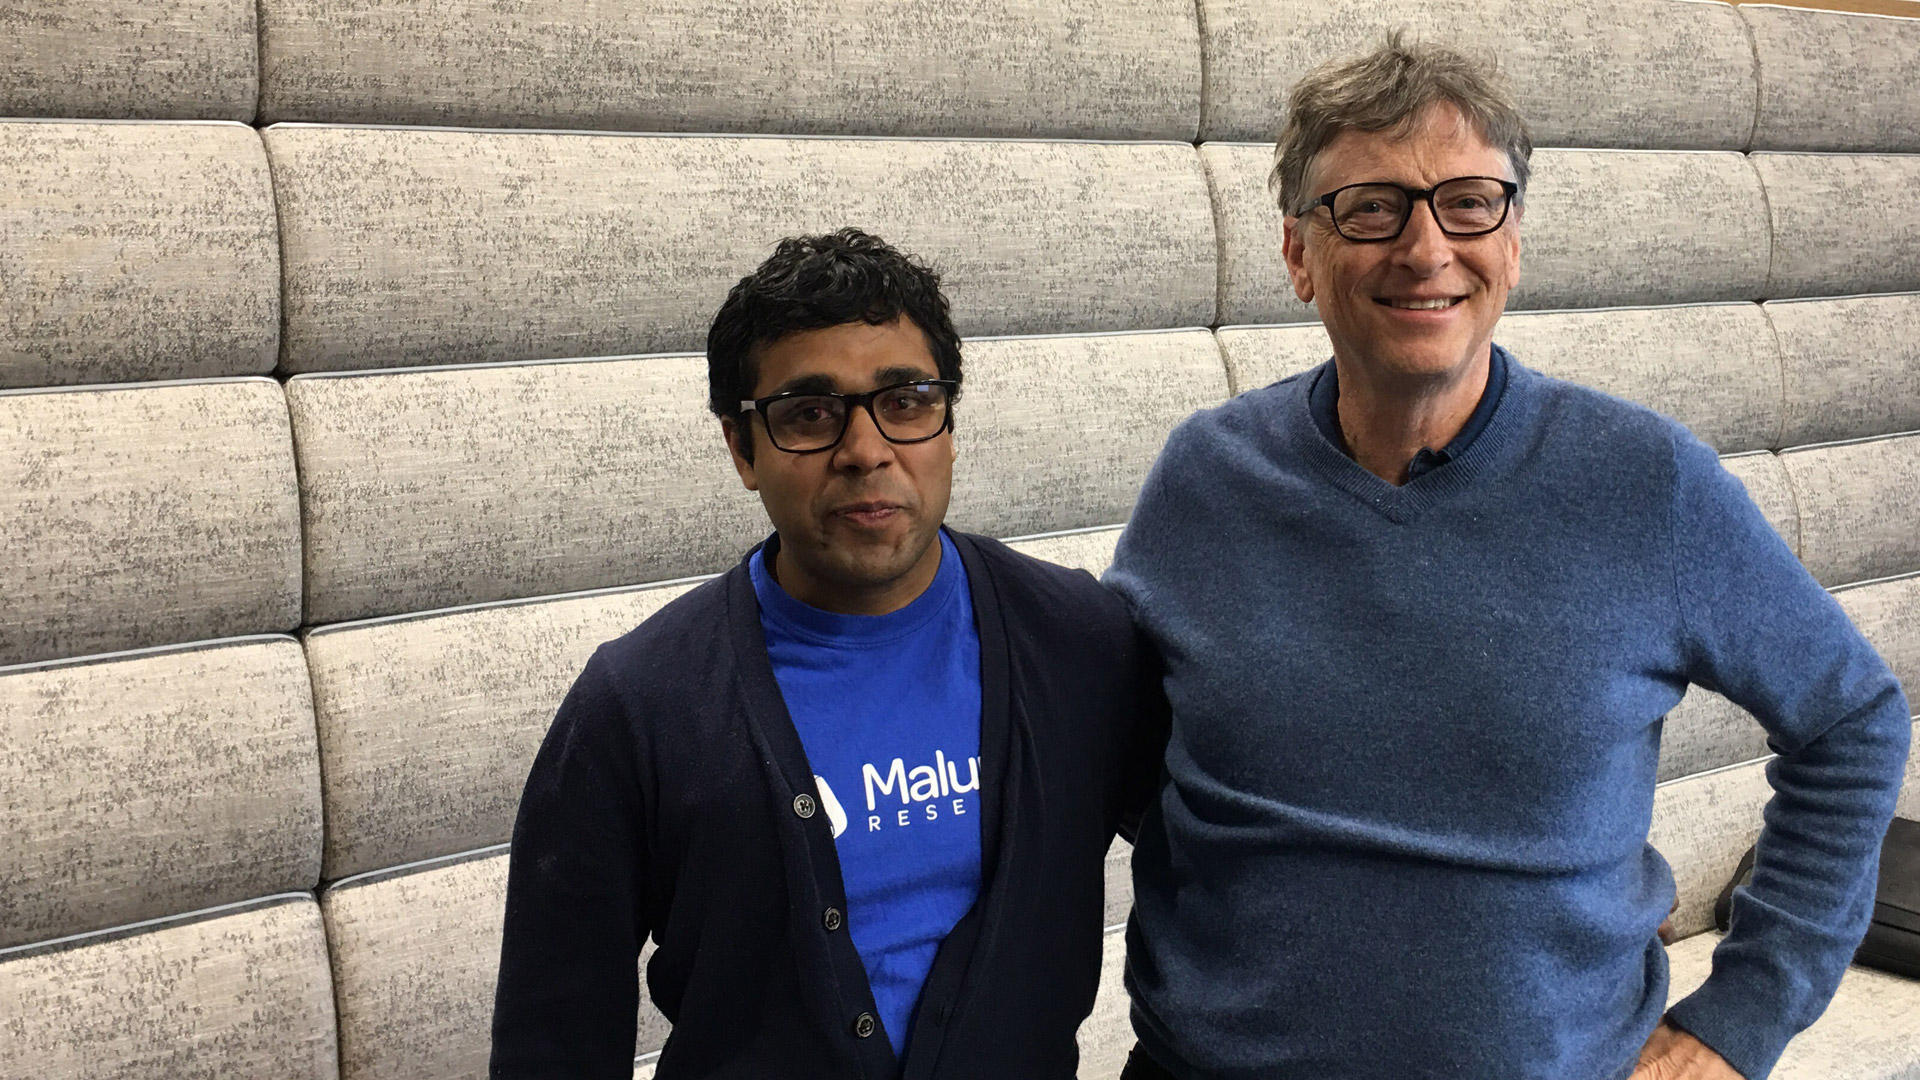 Sam Pasupalak with Bill Gates